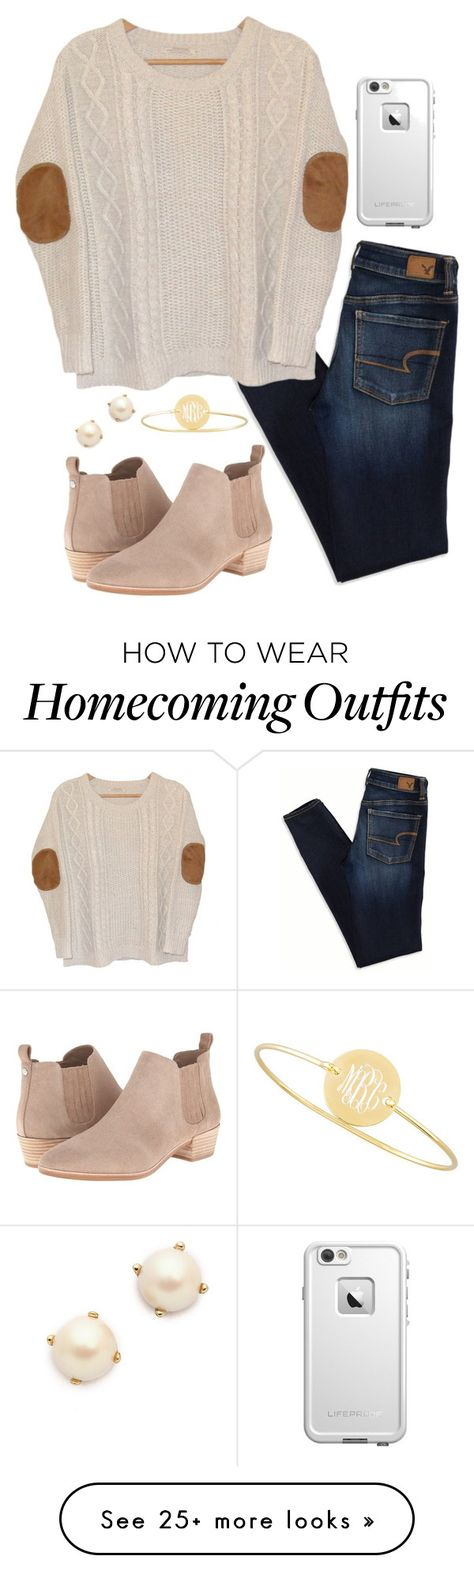 """got asked to homecoming today💖"" by mmorgann on Polyvore featuring MICHAEL Michael Kors, American Eagle Outfitters, Urban Outfitters, LifeProof, Kate Spade and Sarah Chloe"